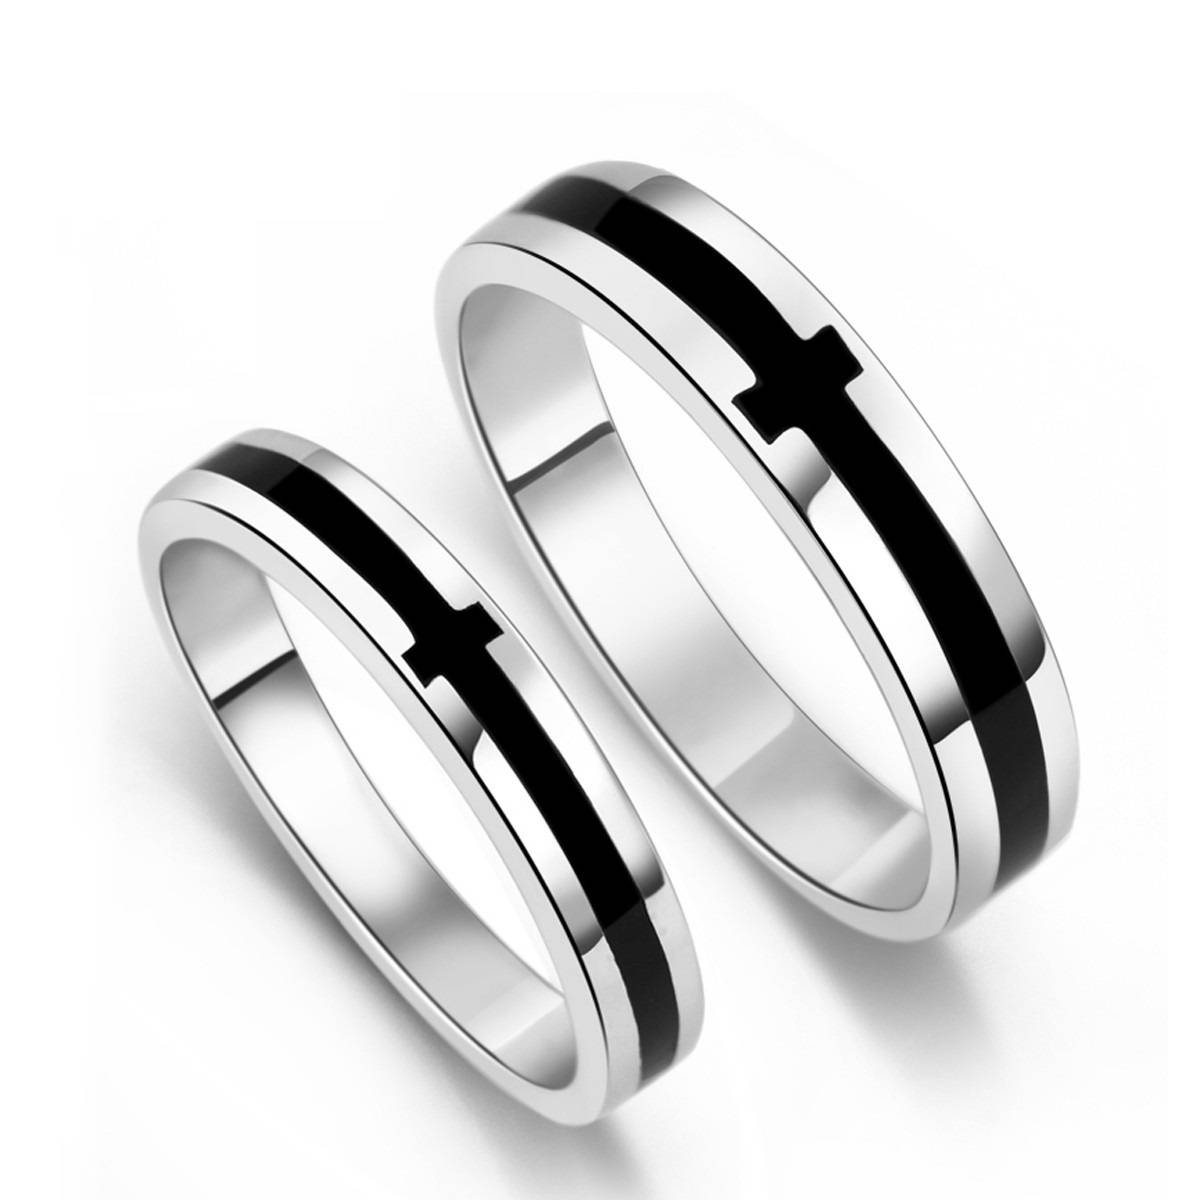 Mens black onyx wedding rings are the best ideas as a way to beautify your wedding rings more stunning.